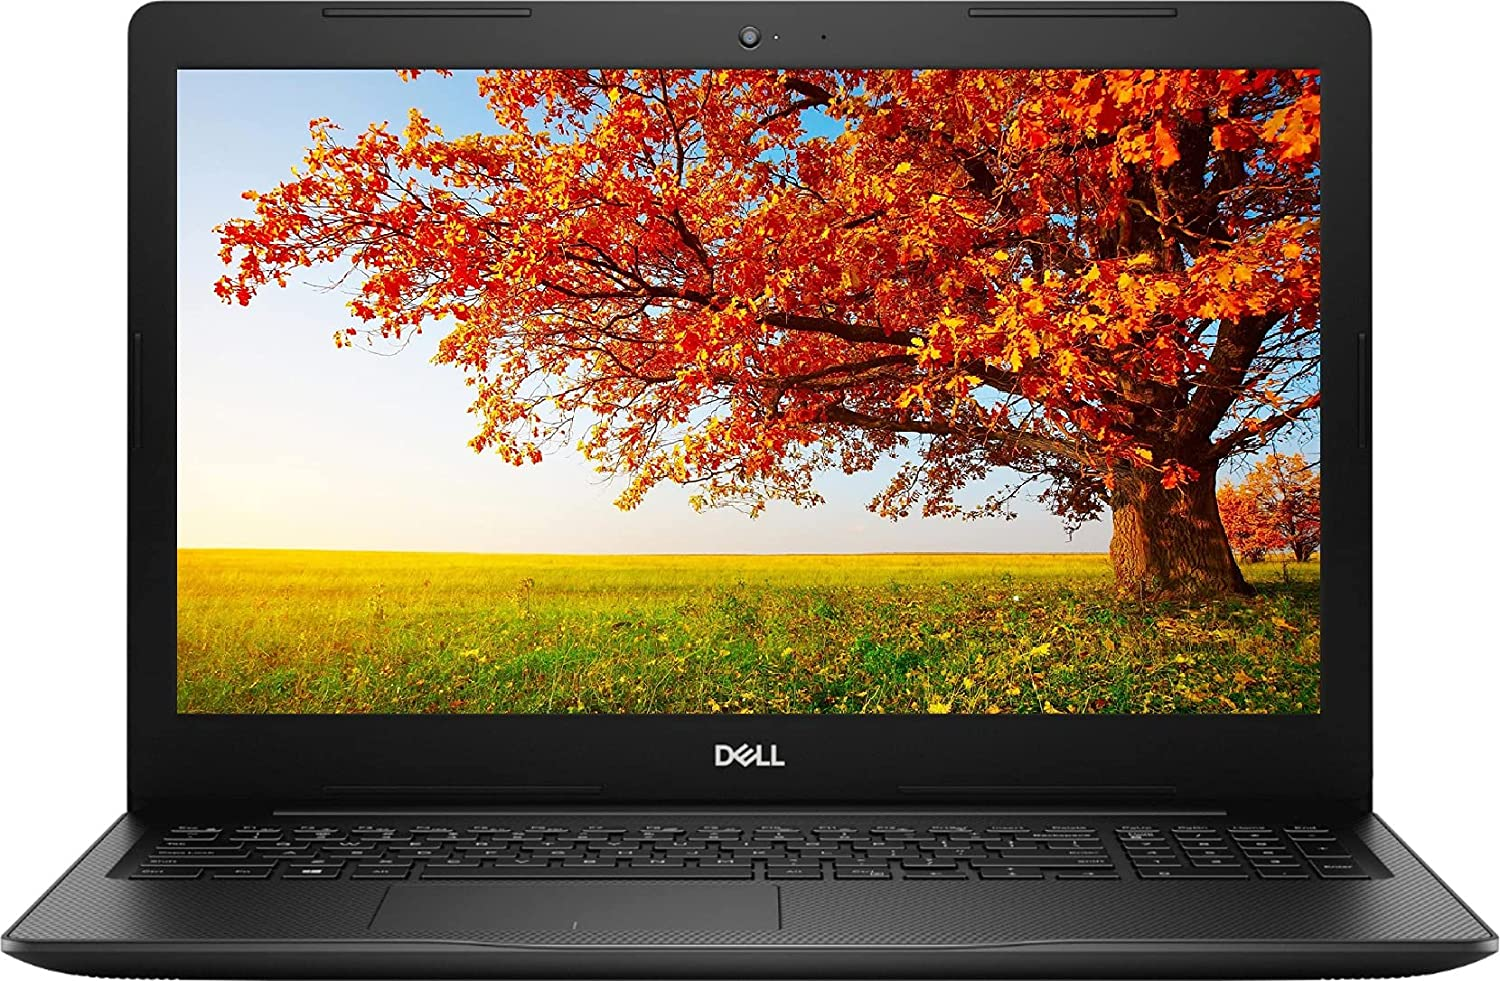 2021 Newest Dell Inspiron 3000 Laptop, 15.6 HD Display, Intel Core i5-1035G1, 12GB DDR4 RAM, 512GB PCIe SSD, Online Meeting Ready, Webcam, WiFi, HDMI, Win10 Home, Black